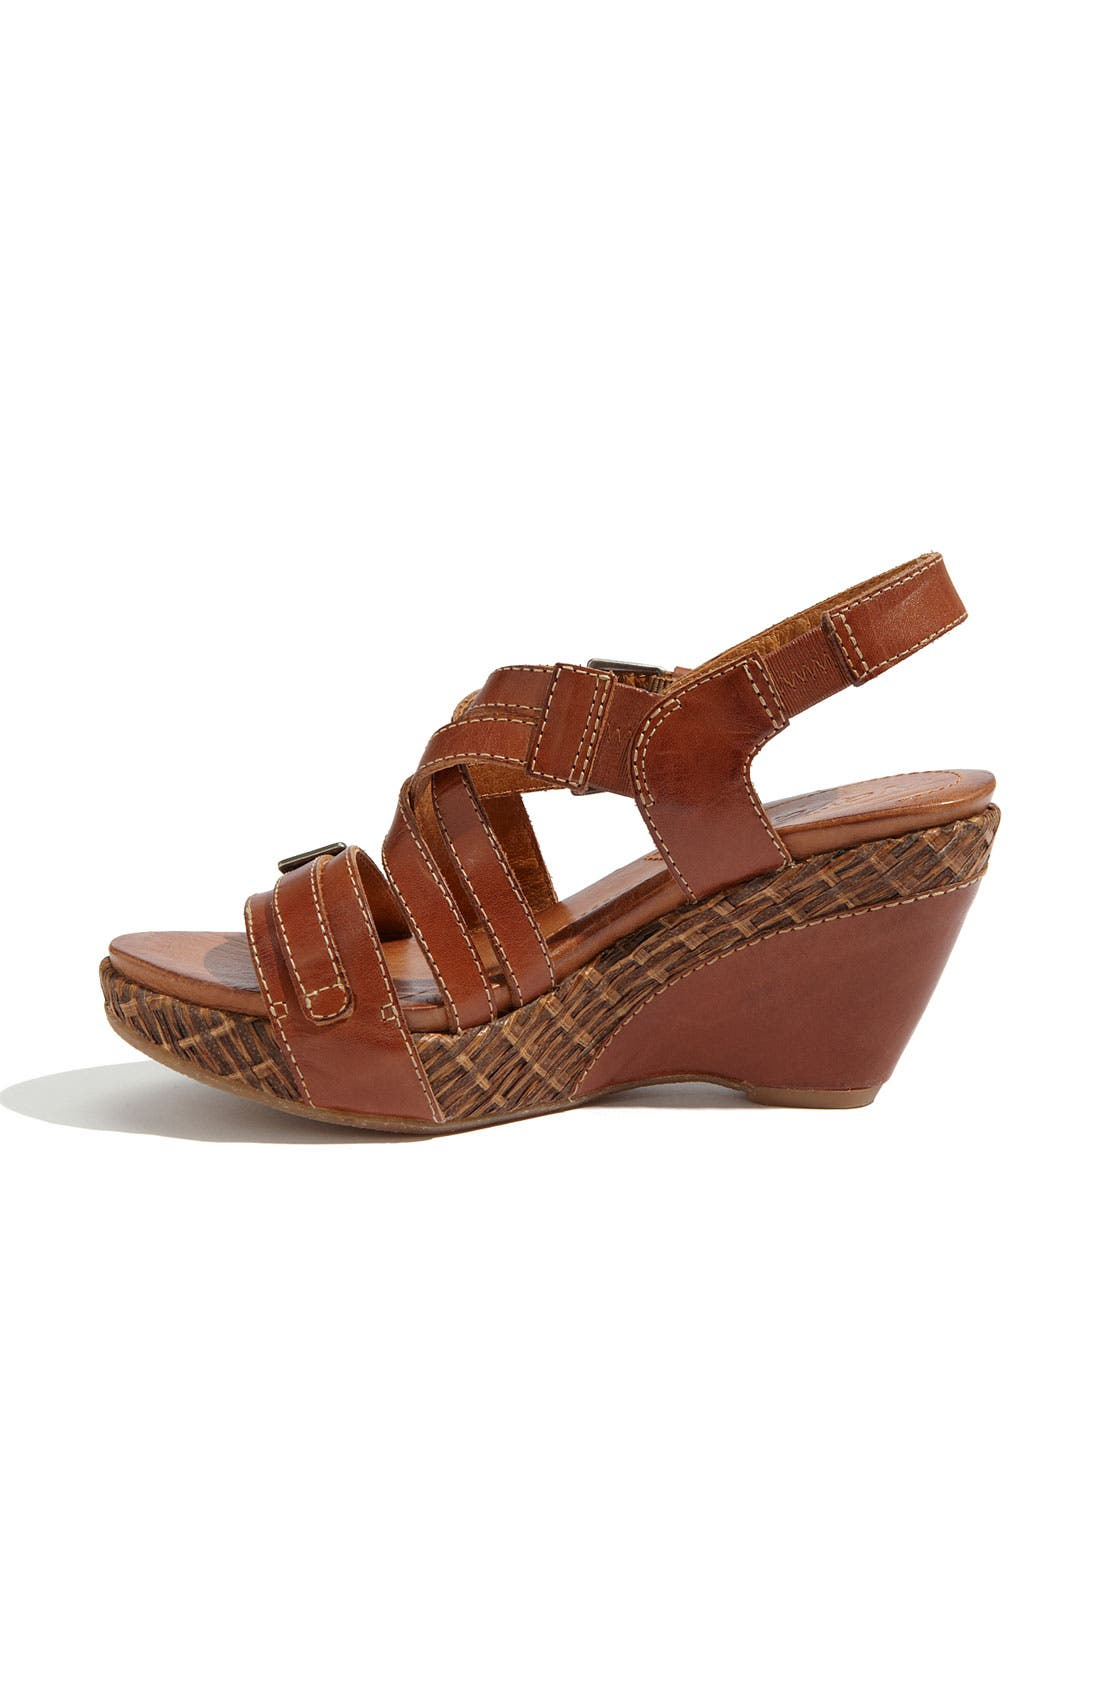 Alternate Image 2  - Naya 'Maize' Sandal